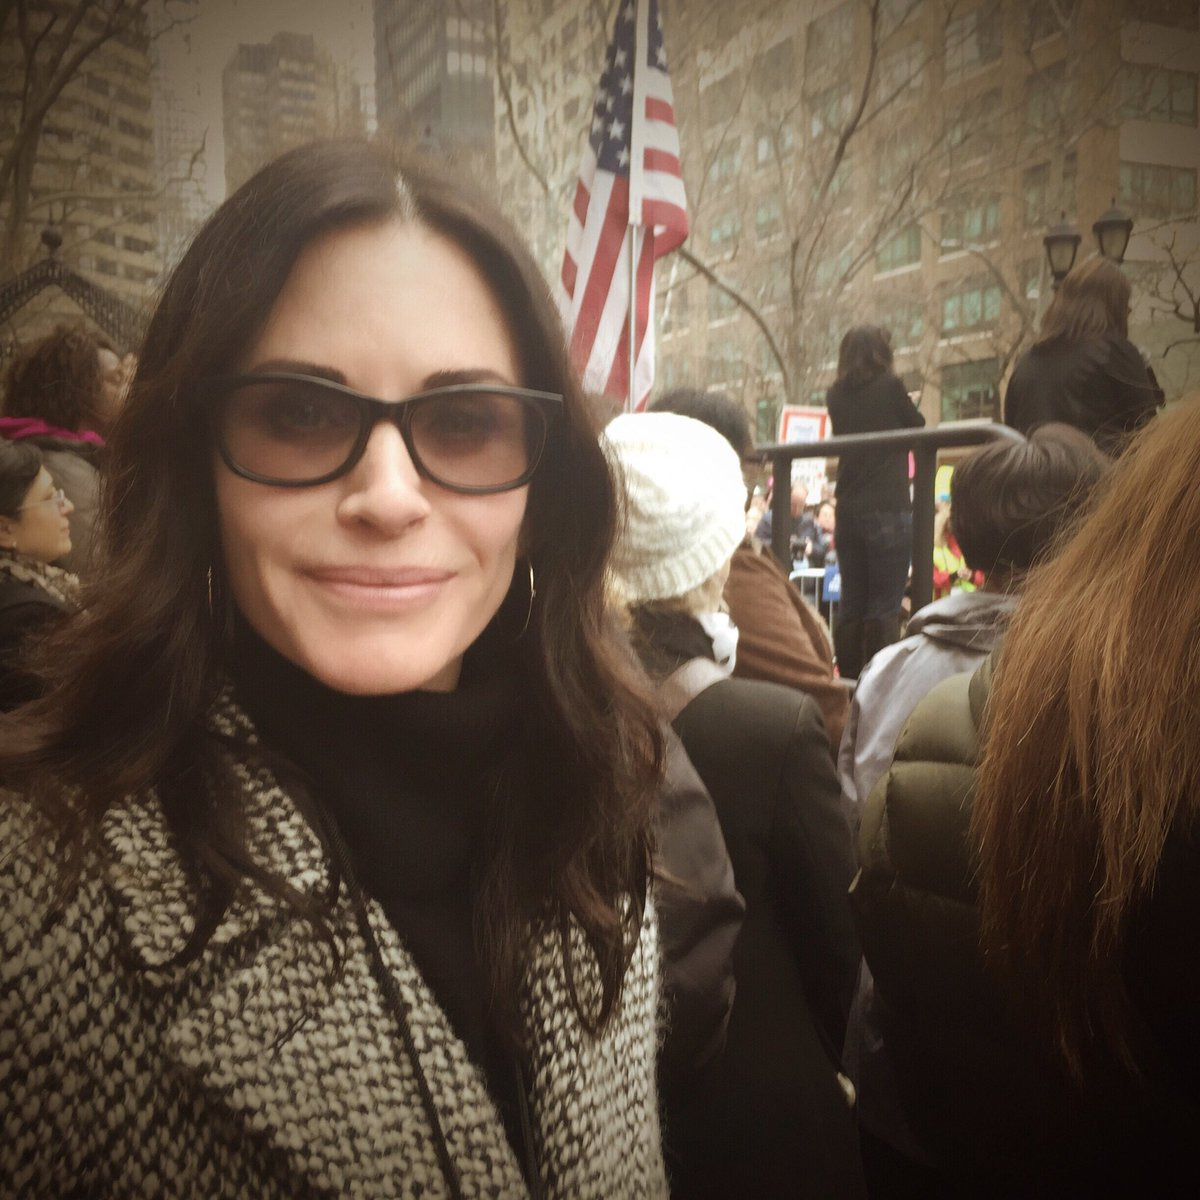 RT @johnnymcdaid: My girl @CourteneyCox at the #WomensMarch in NYC. Yes. X https://t.co/AnA1fYRiqR